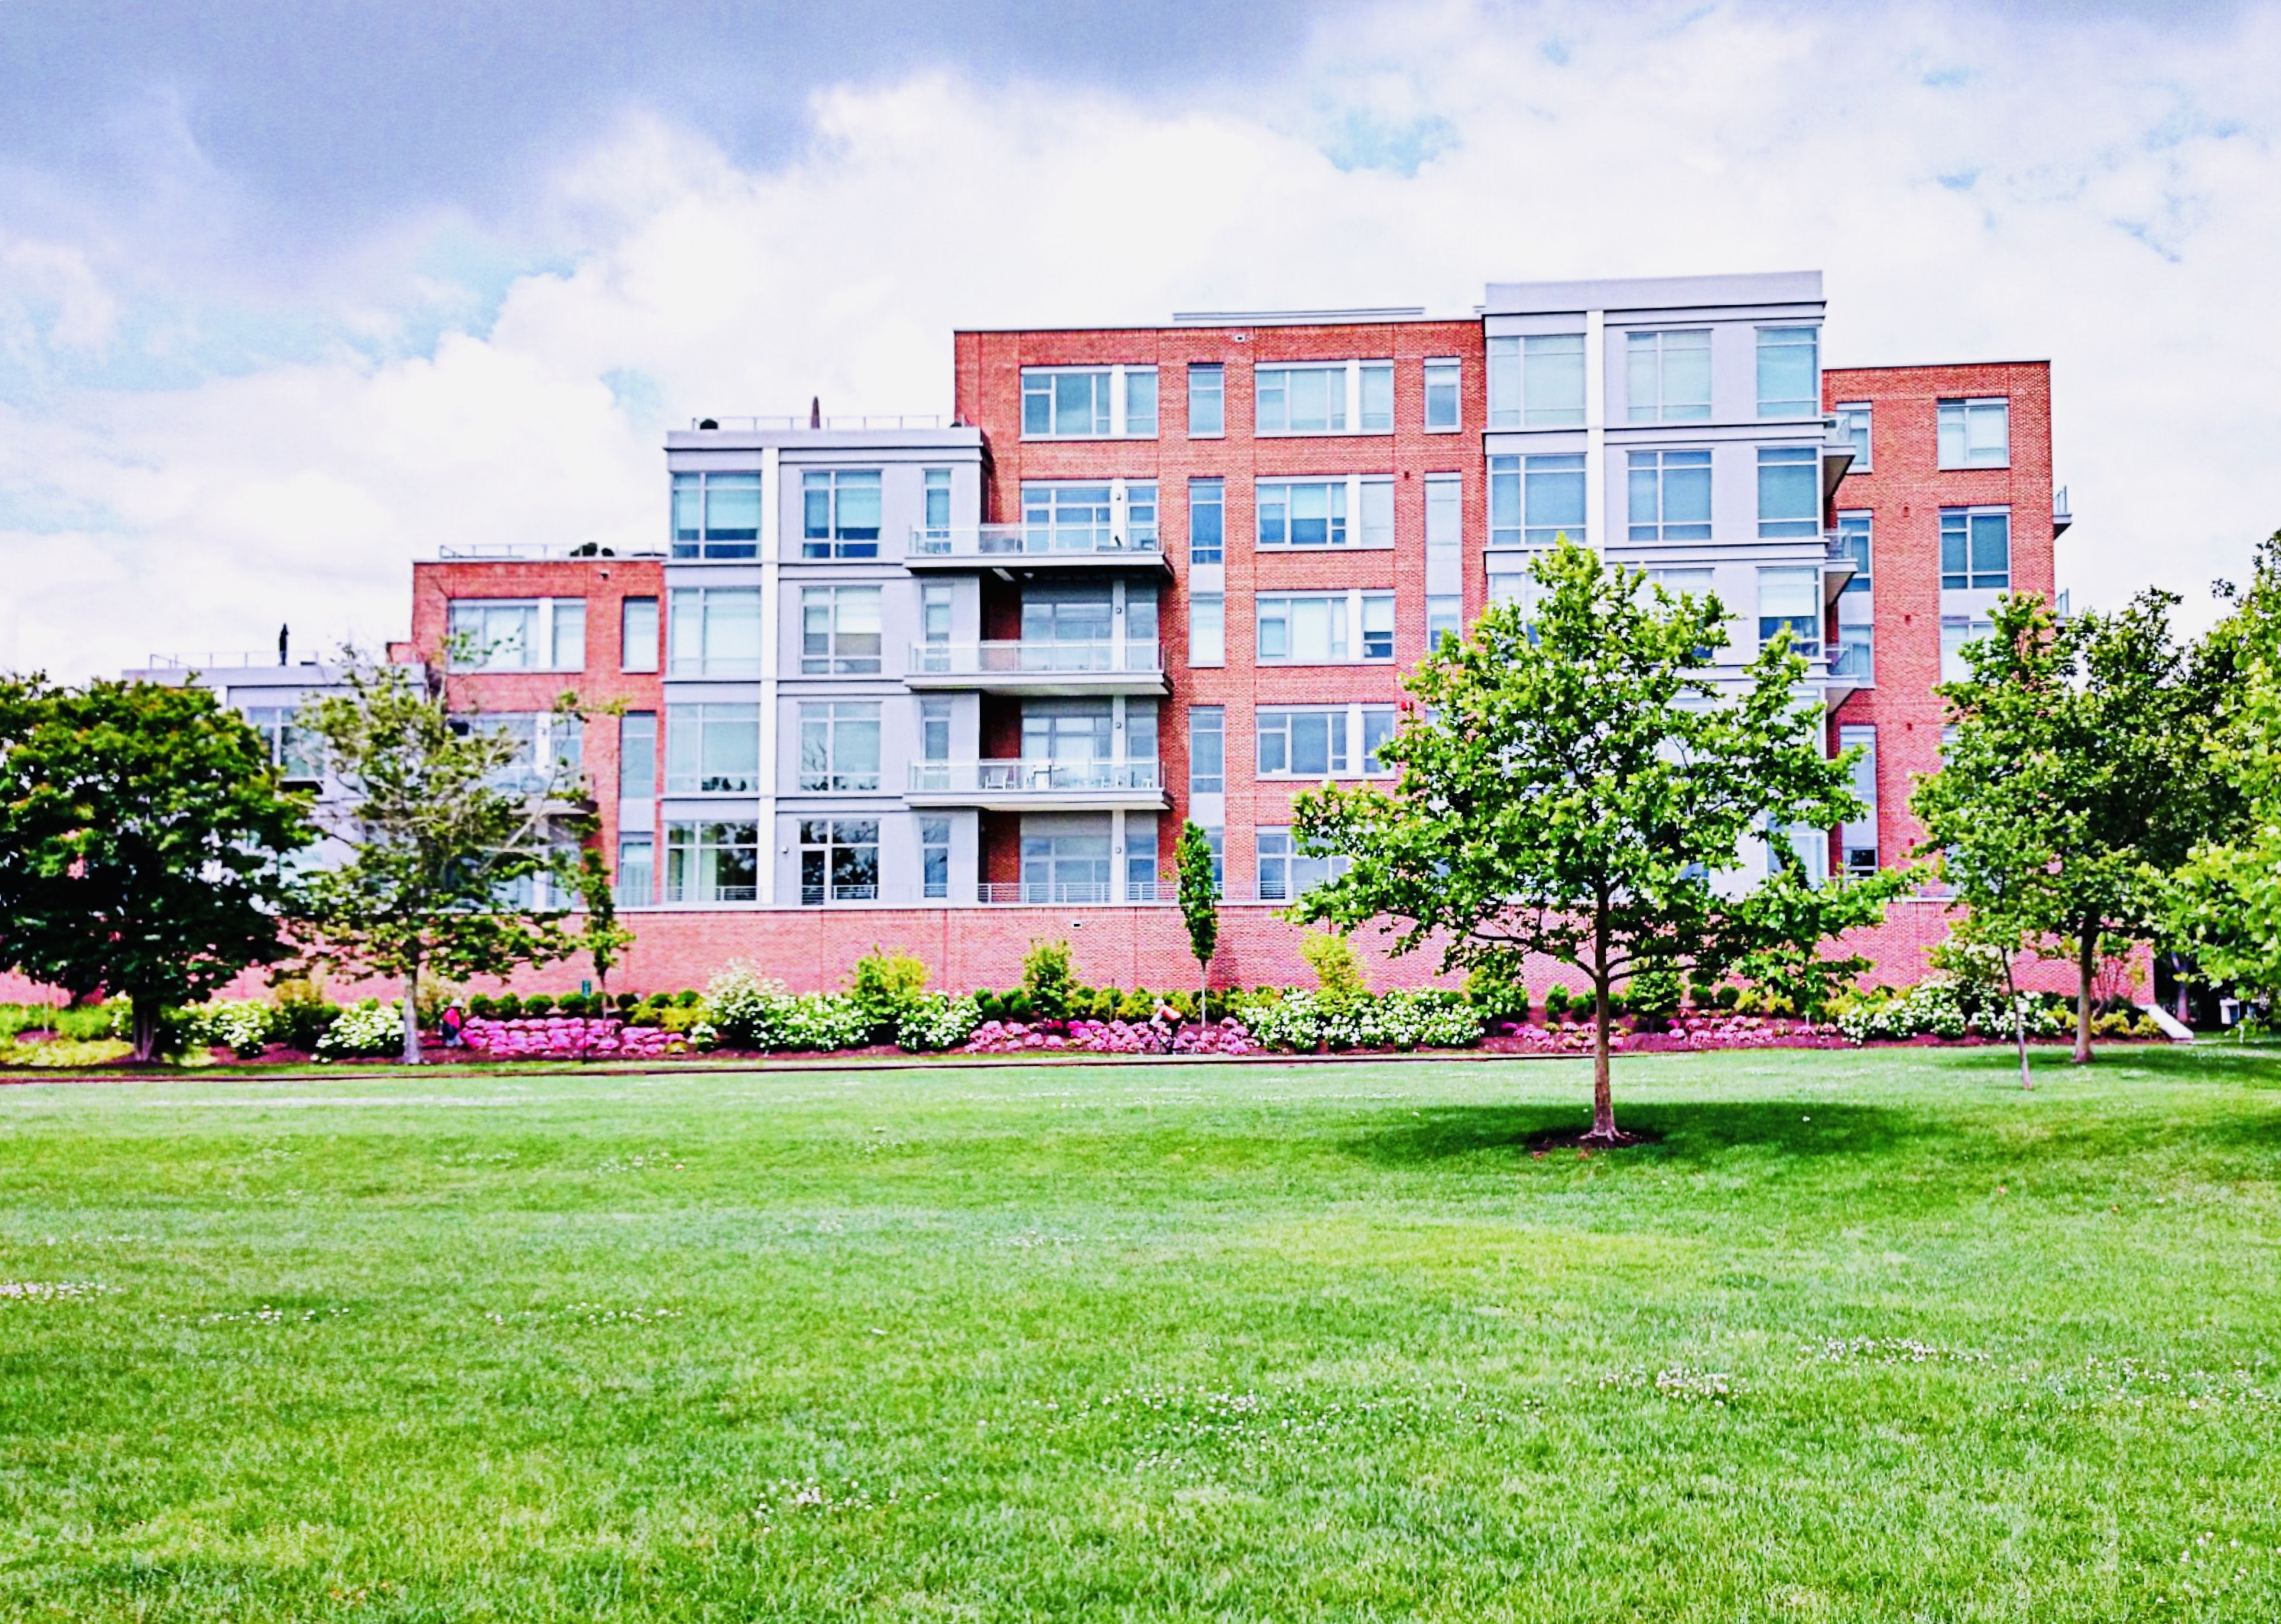 The Oronoco Condo Old Town Alexandria VA